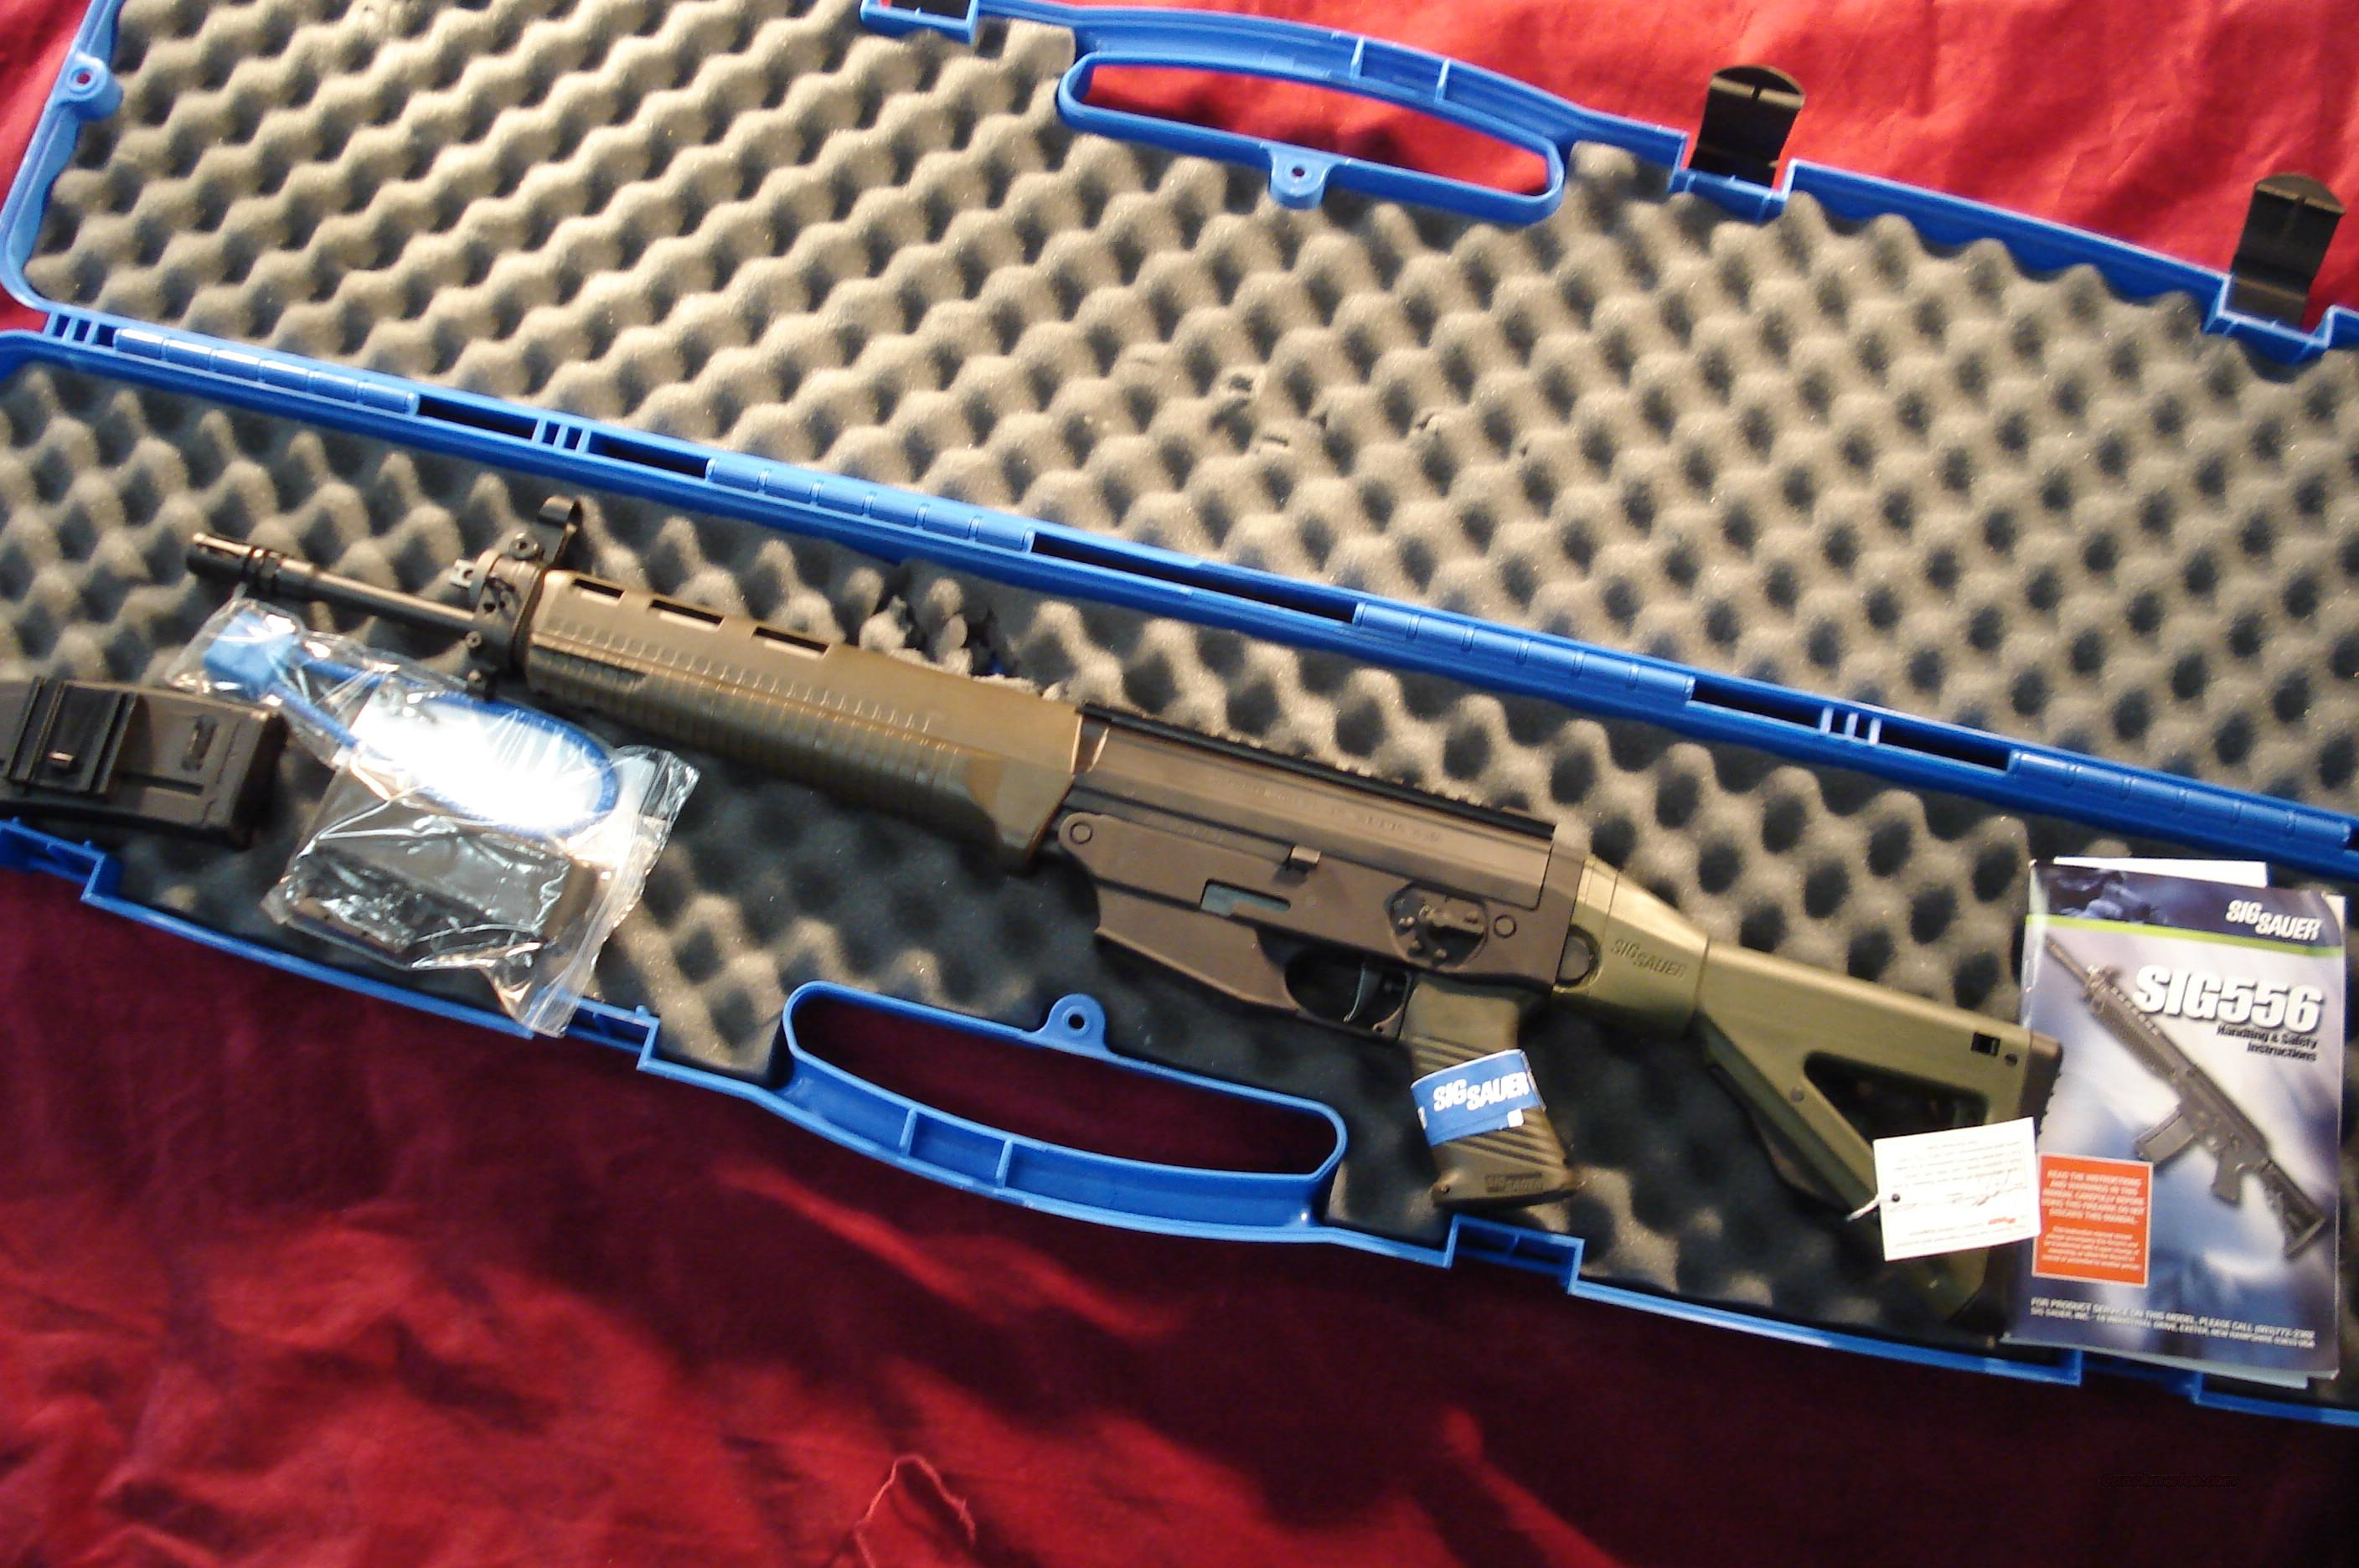 SIG SAUER 556 CLASSIC CARBINE RIFLE OD GREEN NEW  Guns > Rifles > Sig - Sauer/Sigarms Rifles